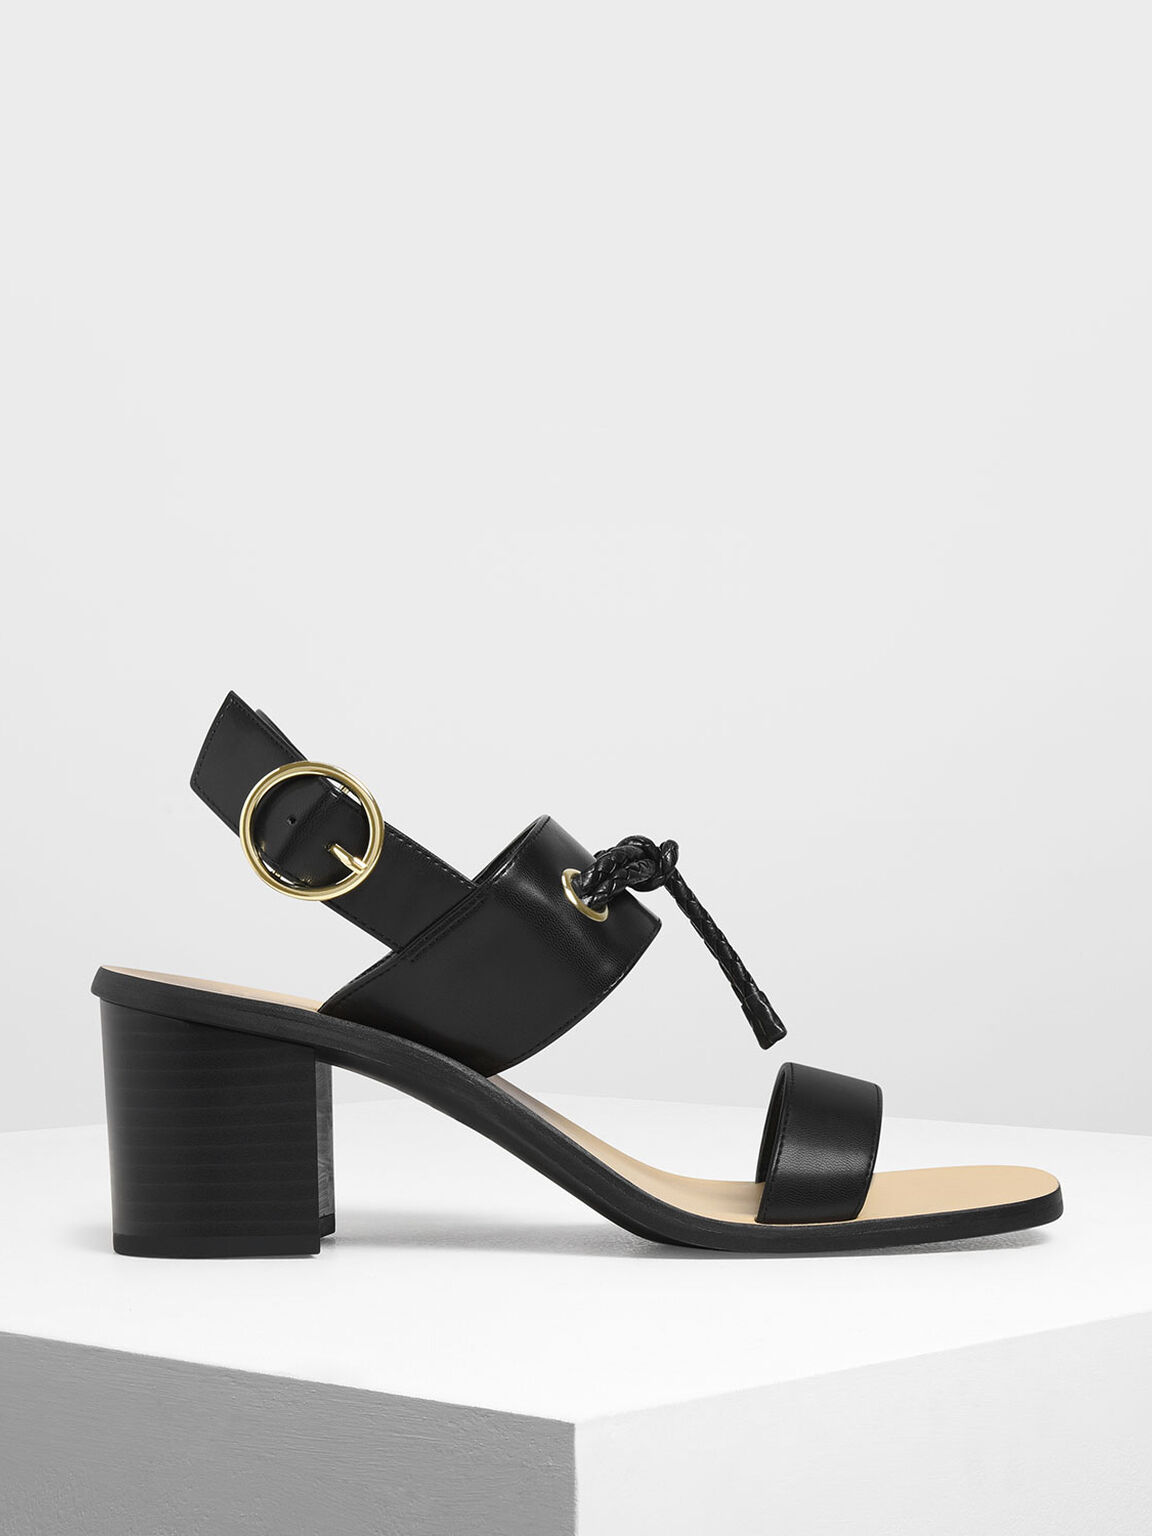 Braided Knot Block Heel Sandals, Black, hi-res